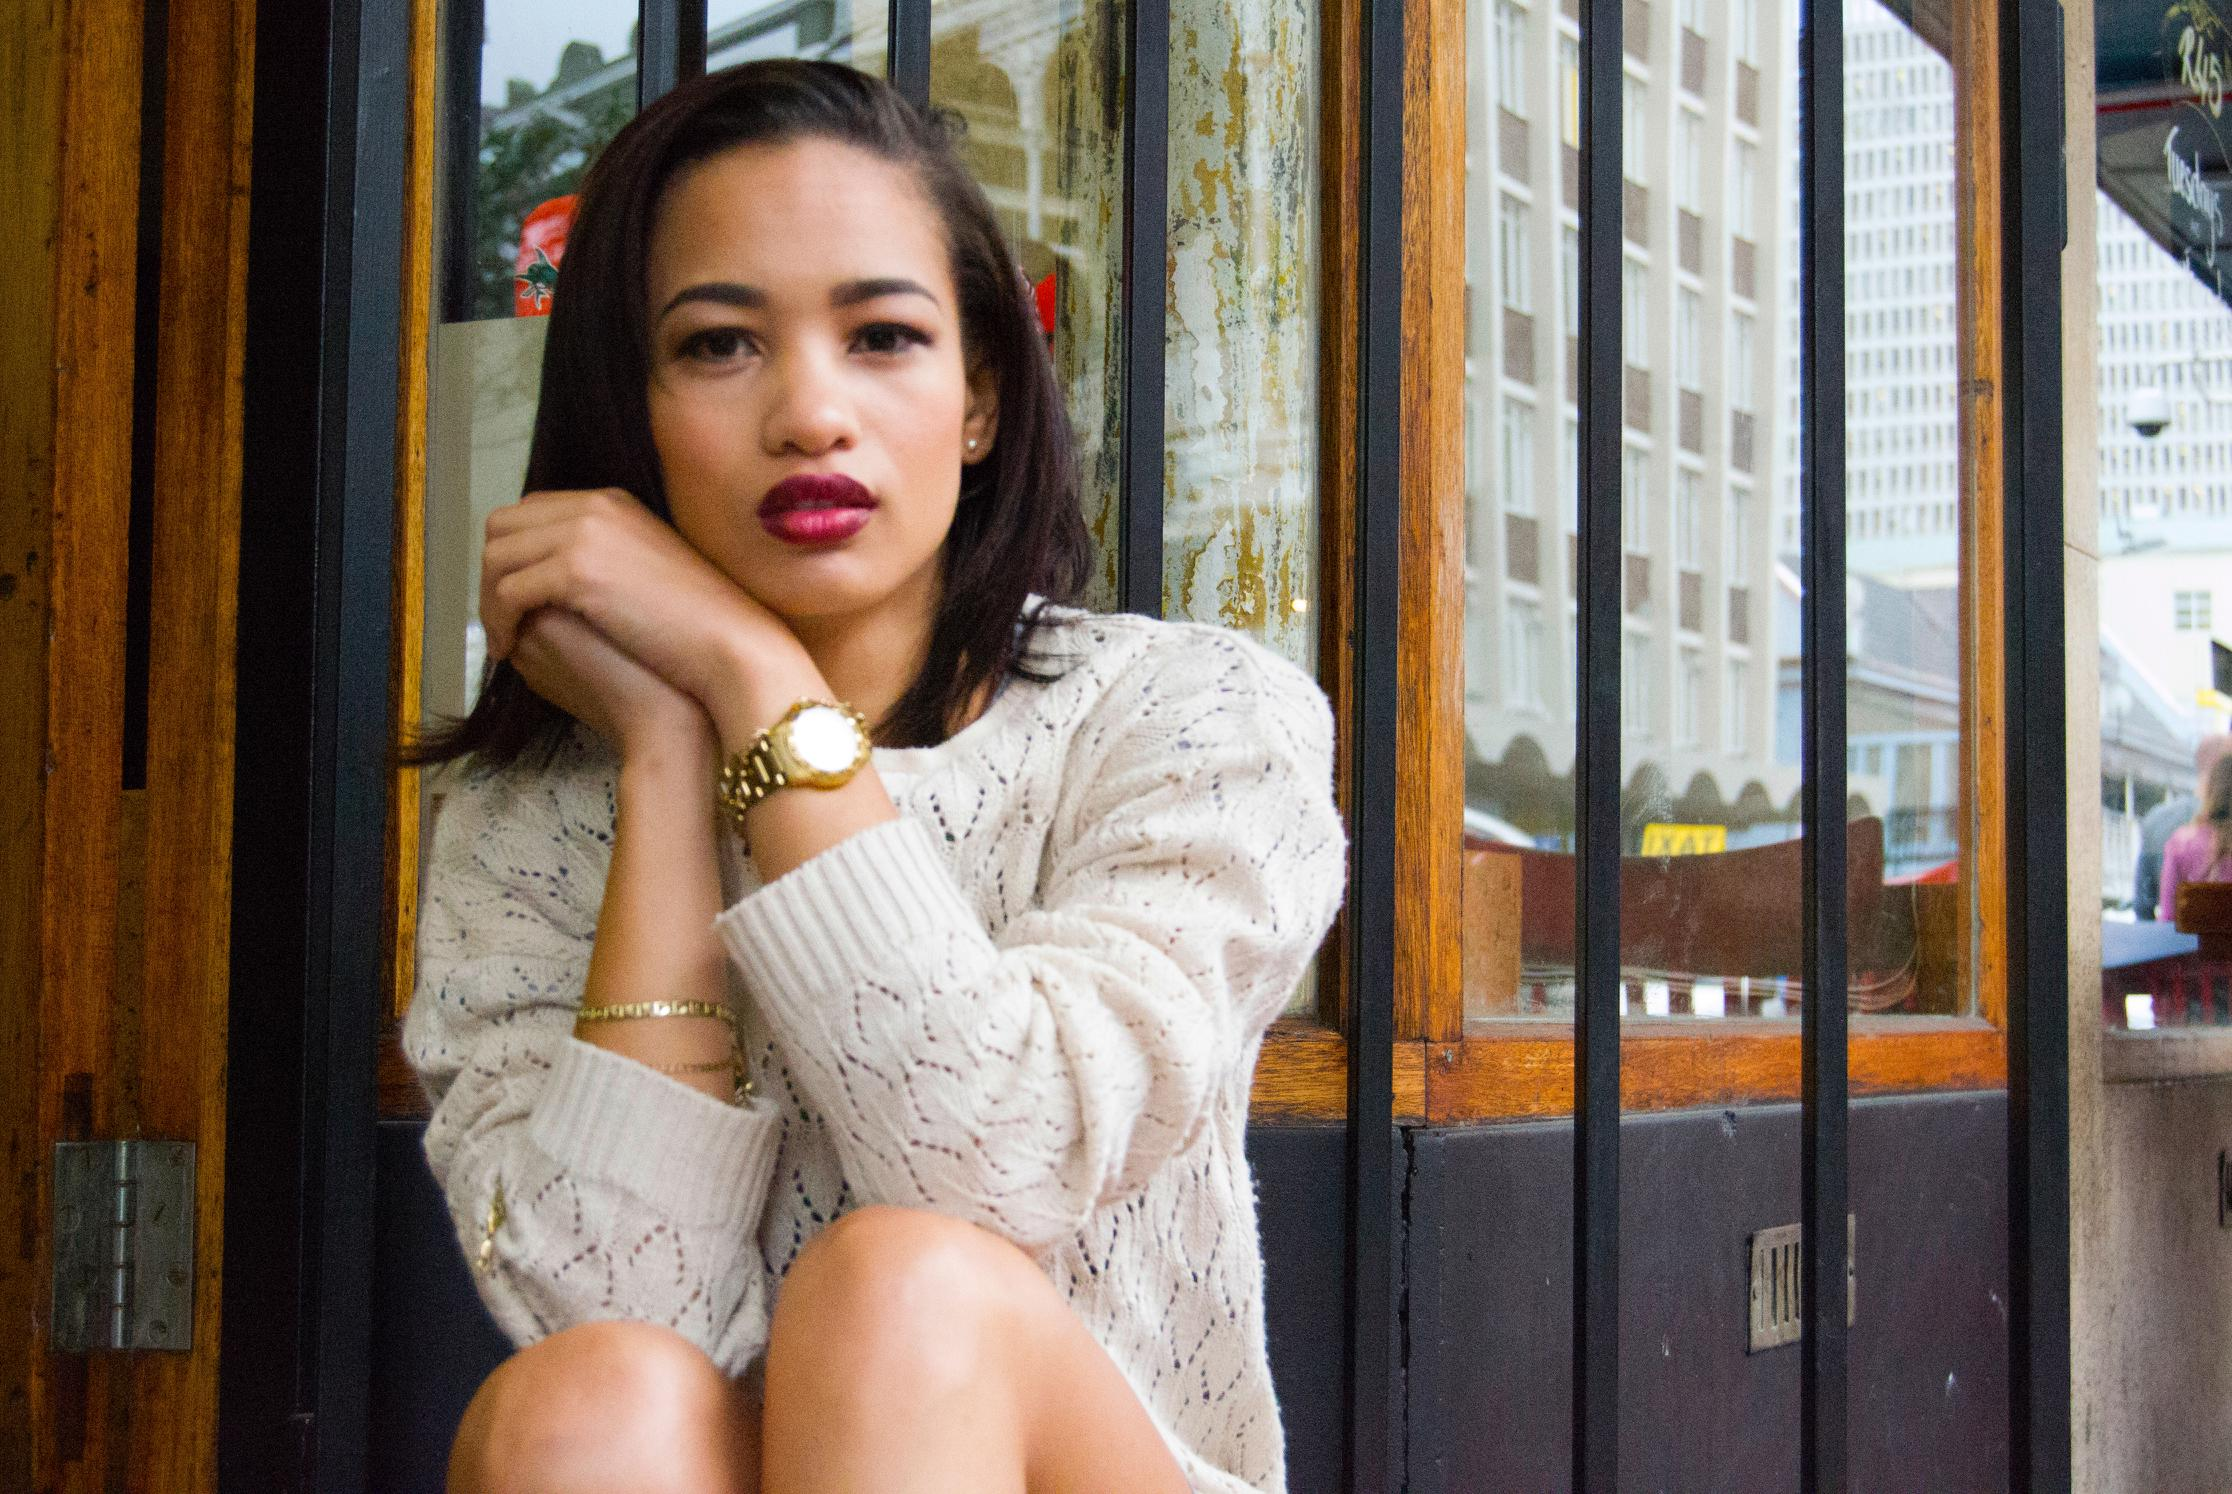 Q&A: Jerain tells of her journey in music with new single, Gold